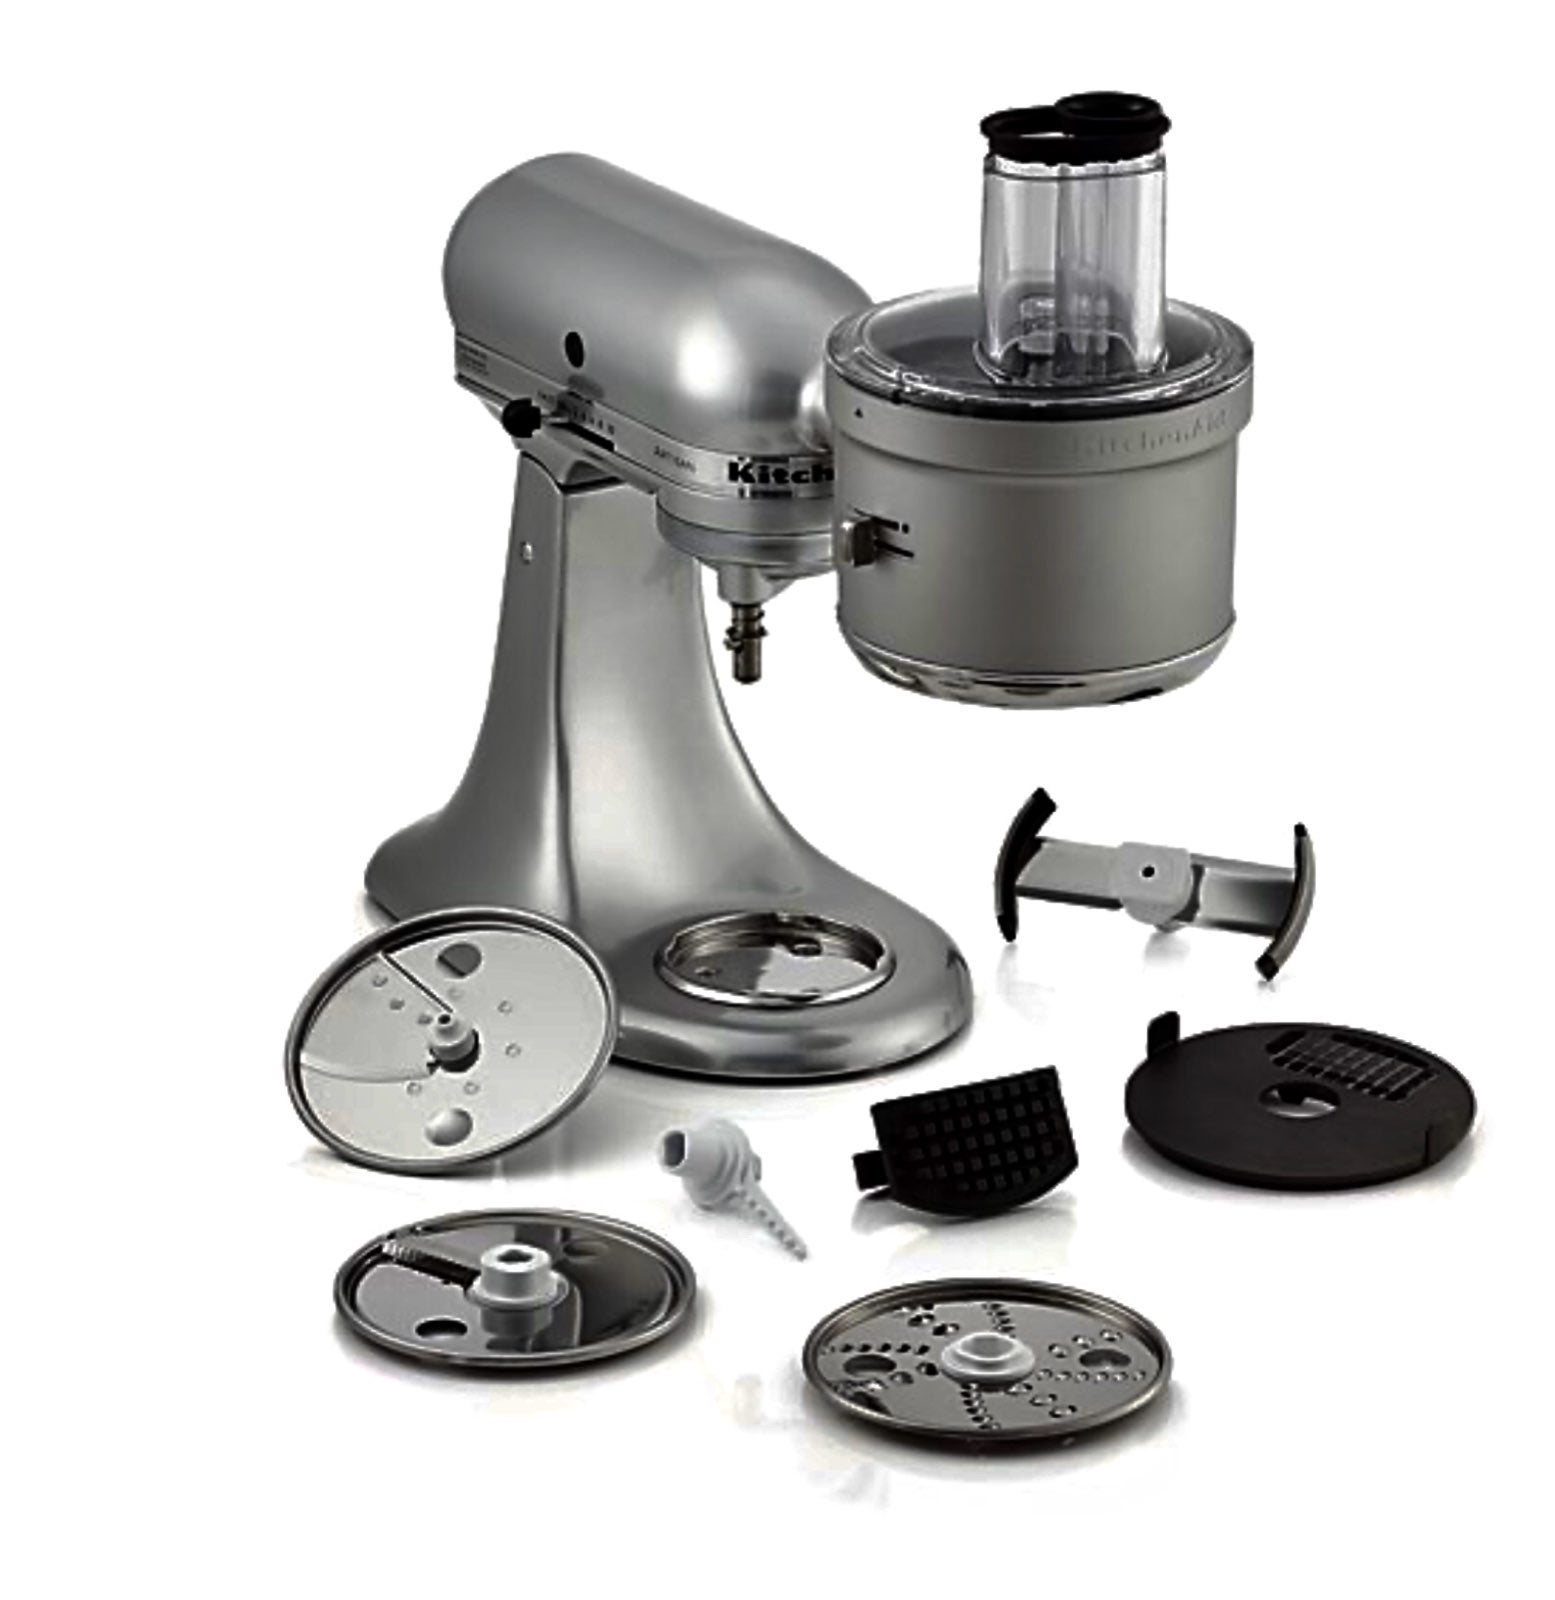 KitchenAid KSM2FPA Food Processor Attach